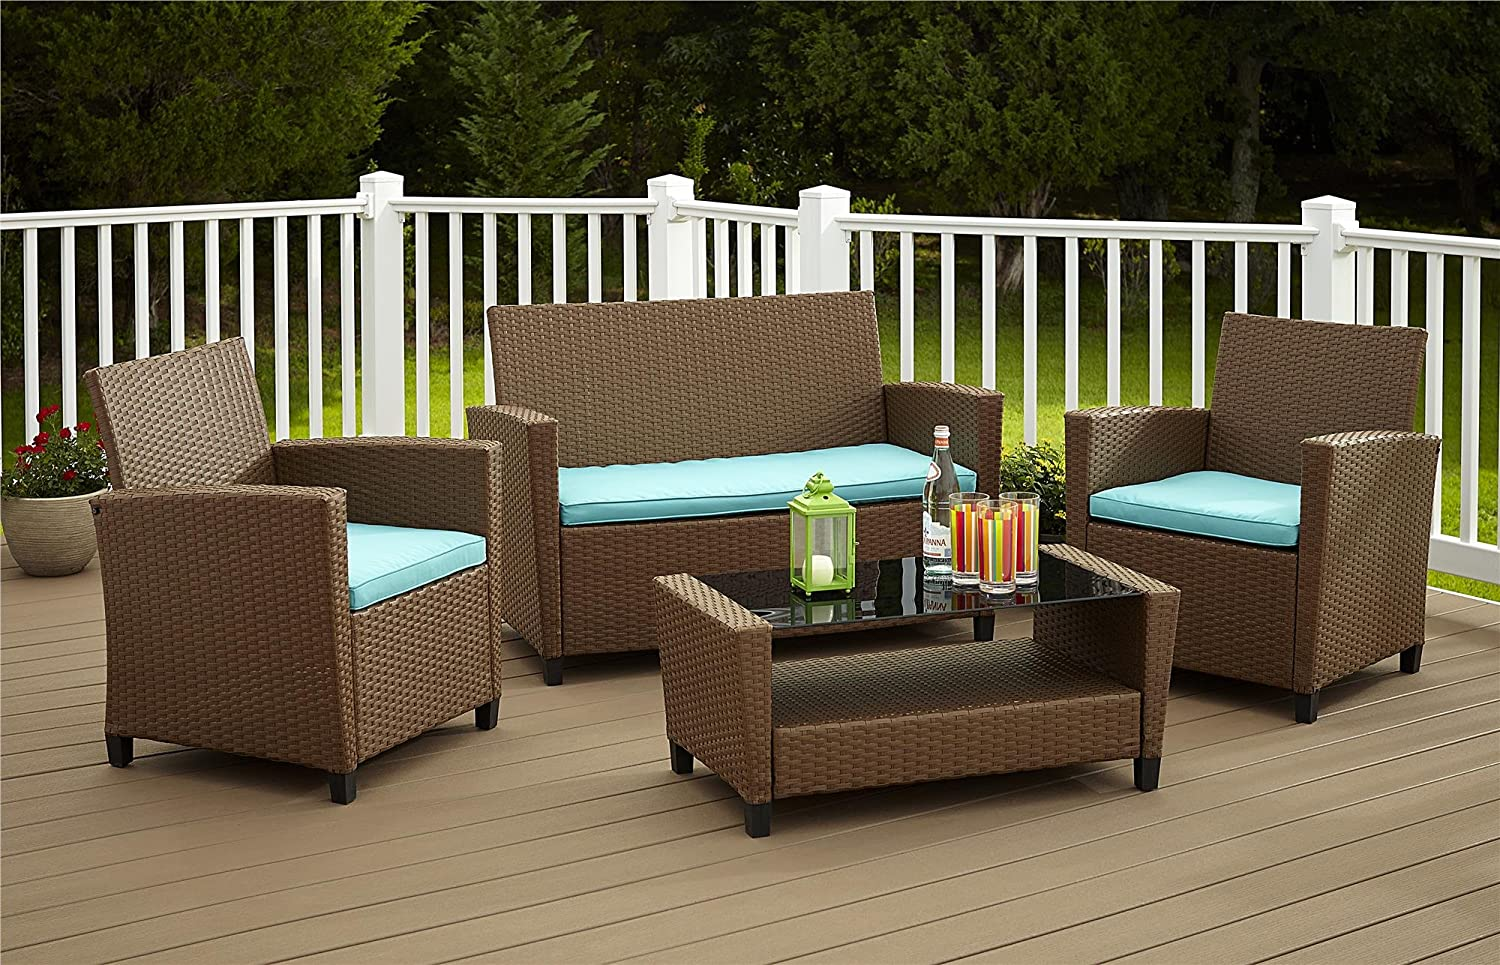 amazoncom cosco products 4 piece malmo resin wicker patio set brown with teal cushions kitchen u0026 dining - Cheap Patio Sets